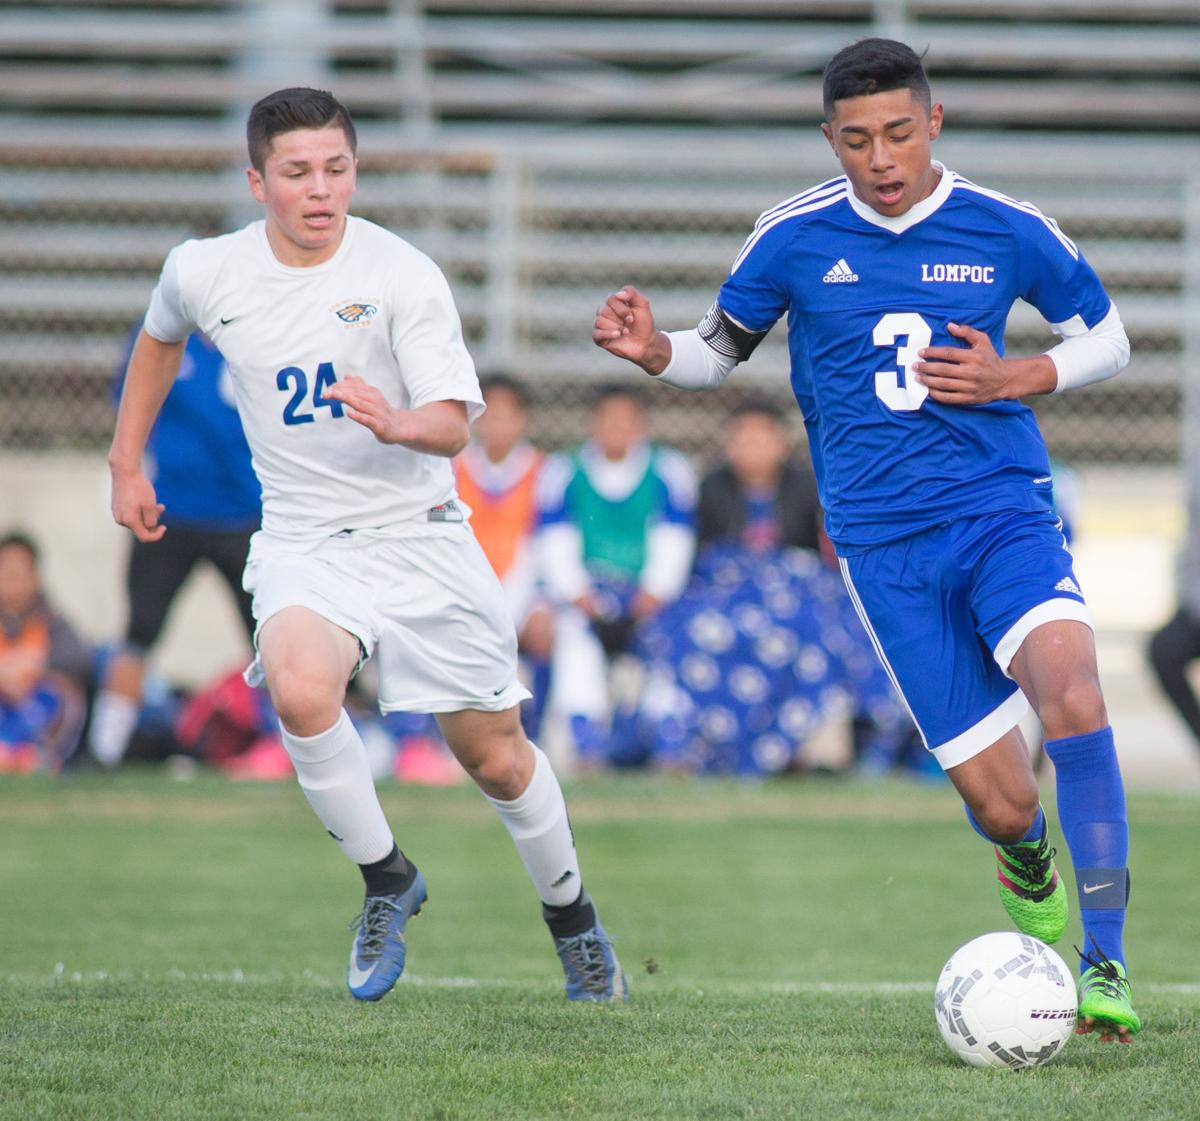 Lompoc's Araujo signs with LA Galaxy II